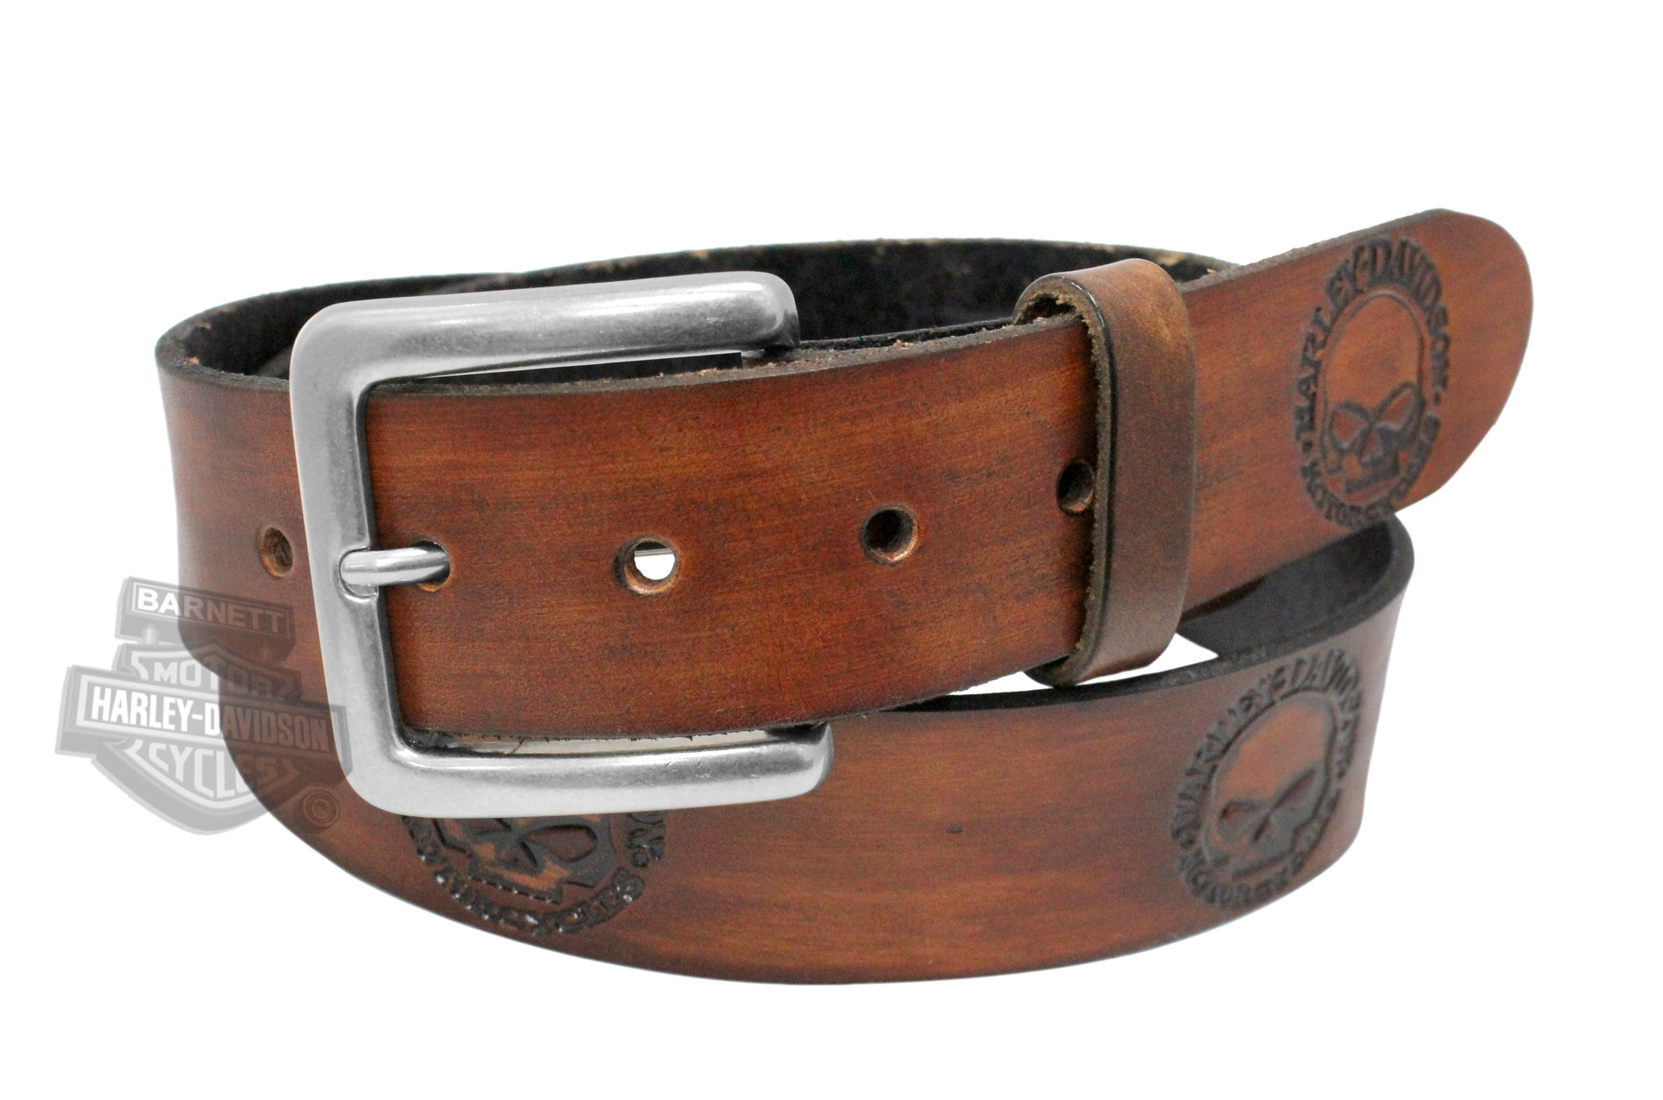 barnett harley davidson belts motorcycle review and